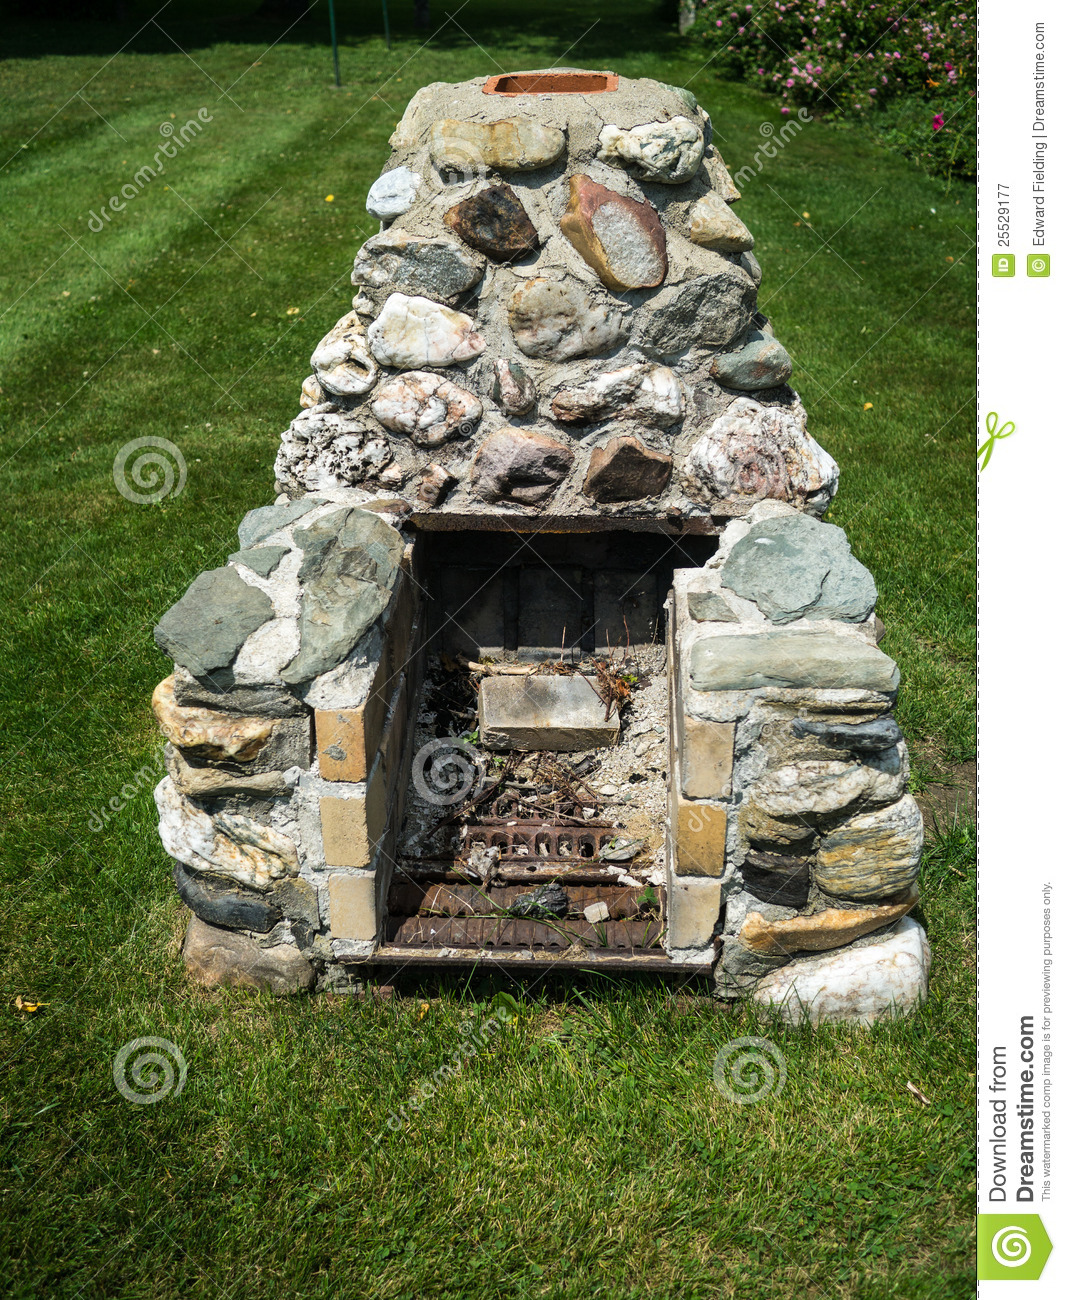 bbq or grilling outdoor fireplace for cooking in the backyard